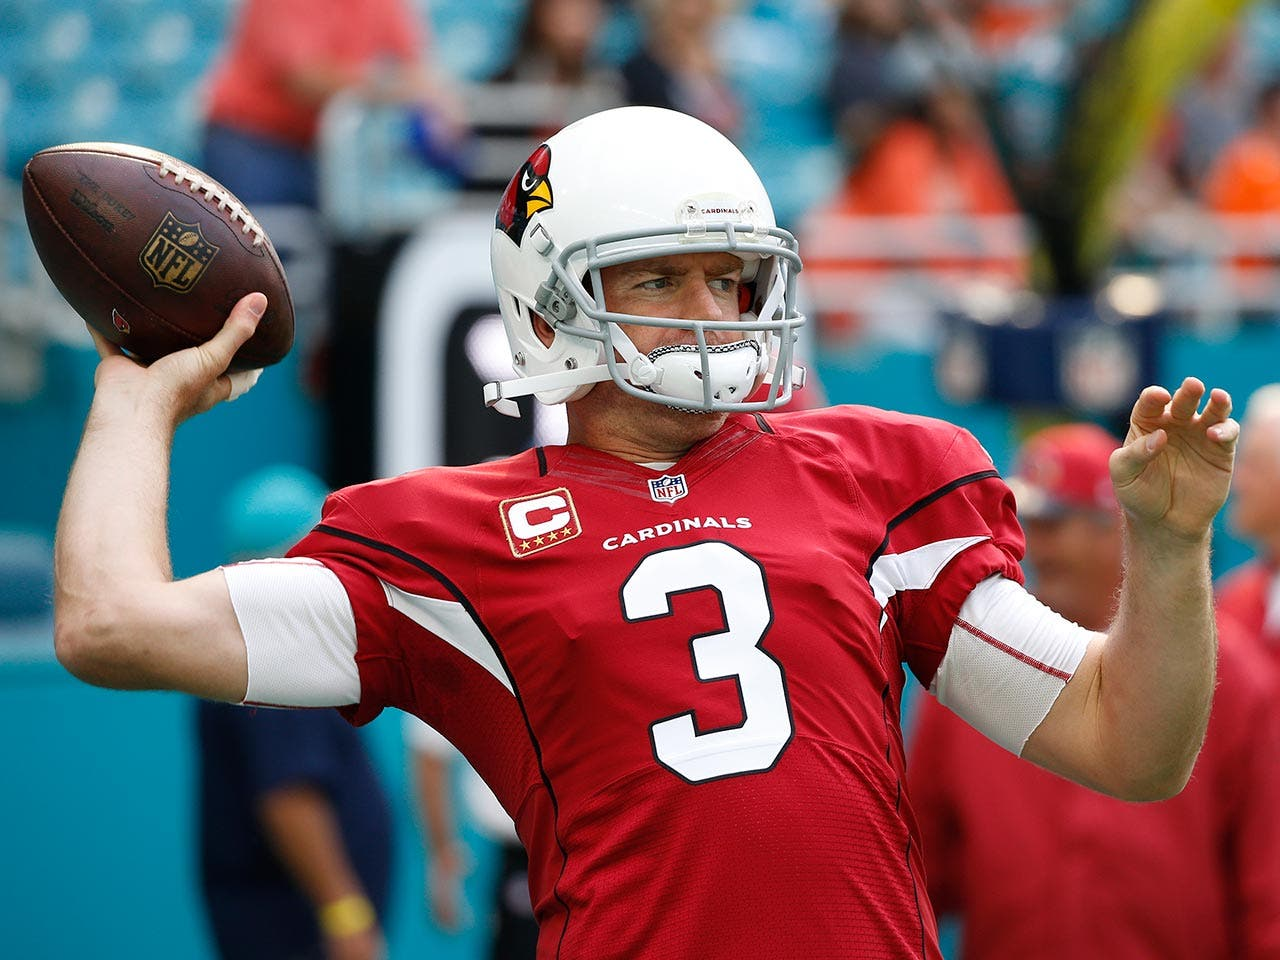 Carson Palmer | Joel Auerbach/Getty Images